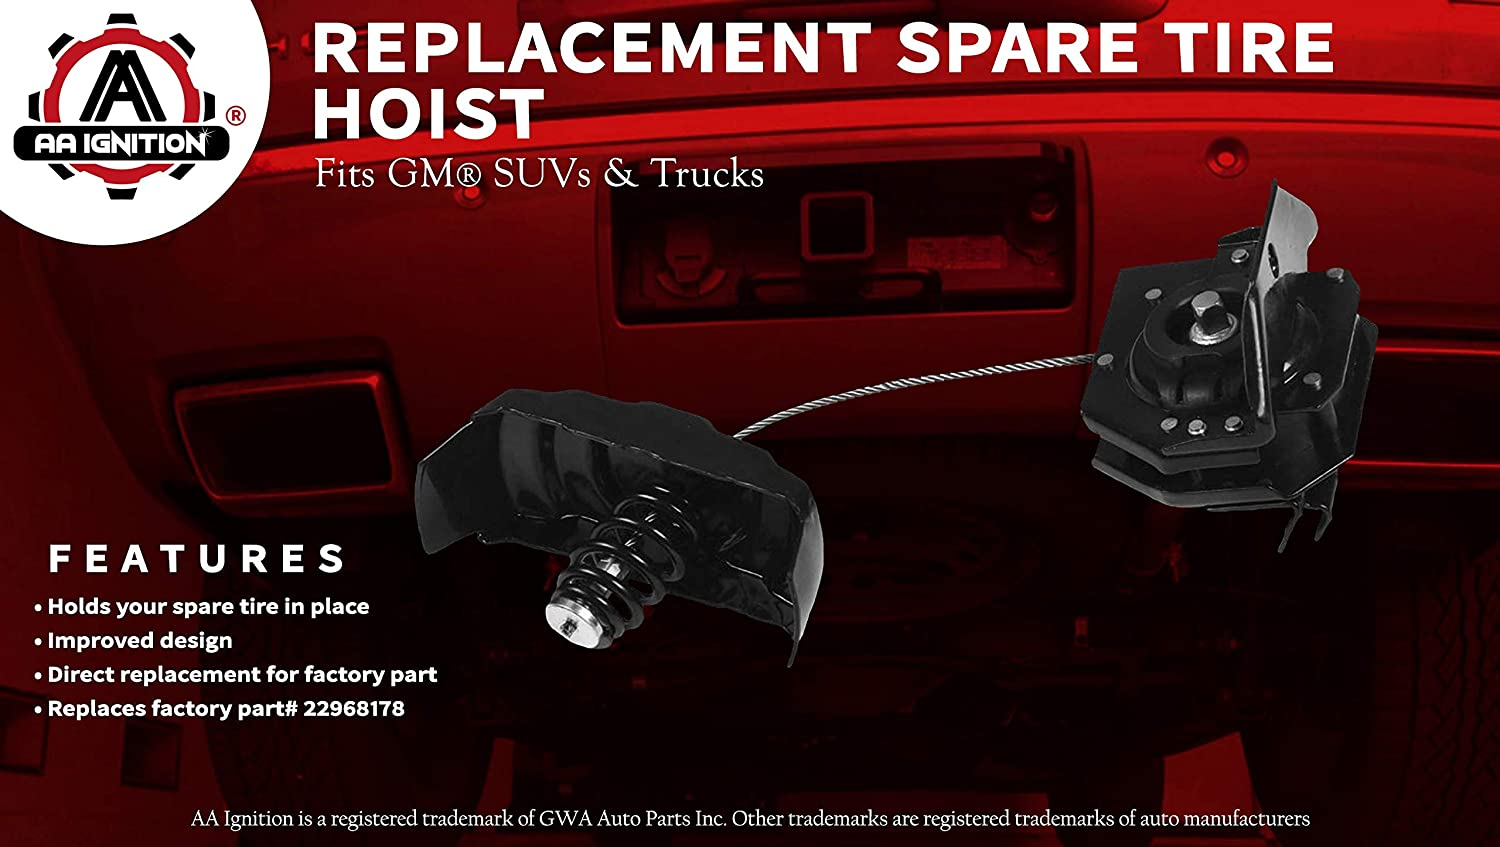 2002-2018 Cadillac Esclade 924-517 22968178 25974845 2007-2013 Chevy Avalanche Spare Tire Hoist Winch Carrier Holder for 2001-2018 GMC Yukon and Chevy Tahoe 2001-2014 Chevy Suburban 1500 2500